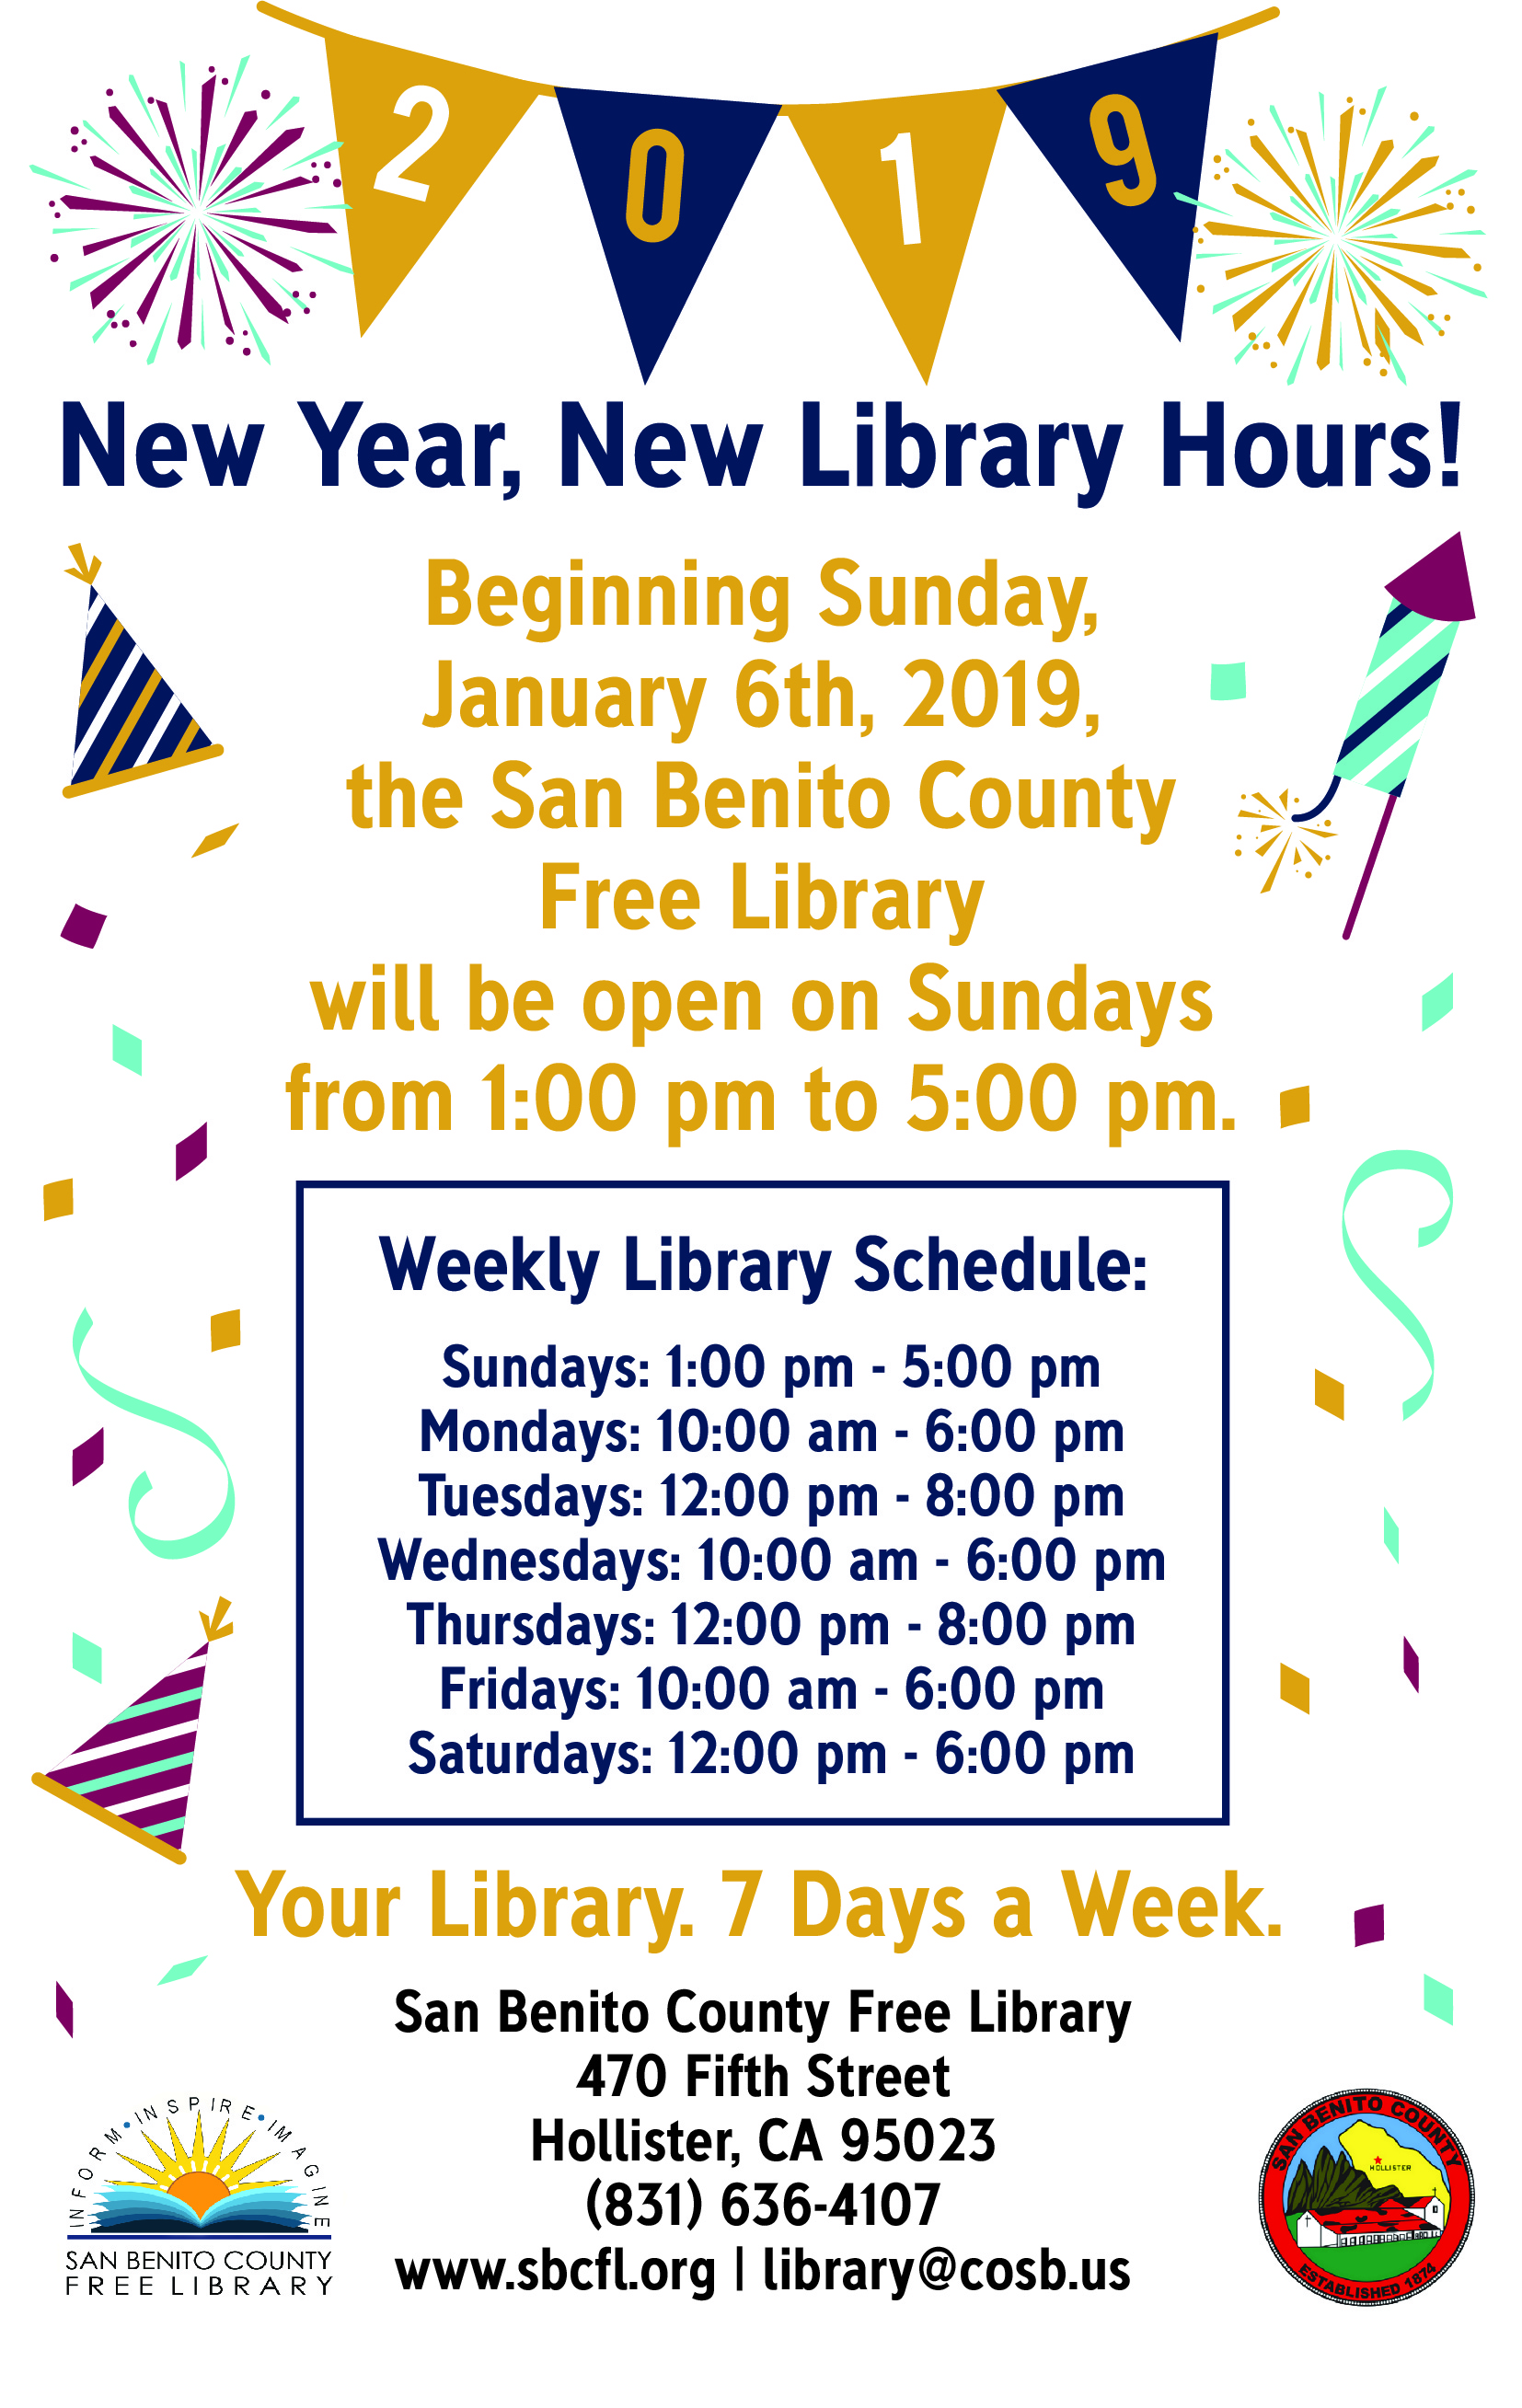 Library Open 1pm - 5pm